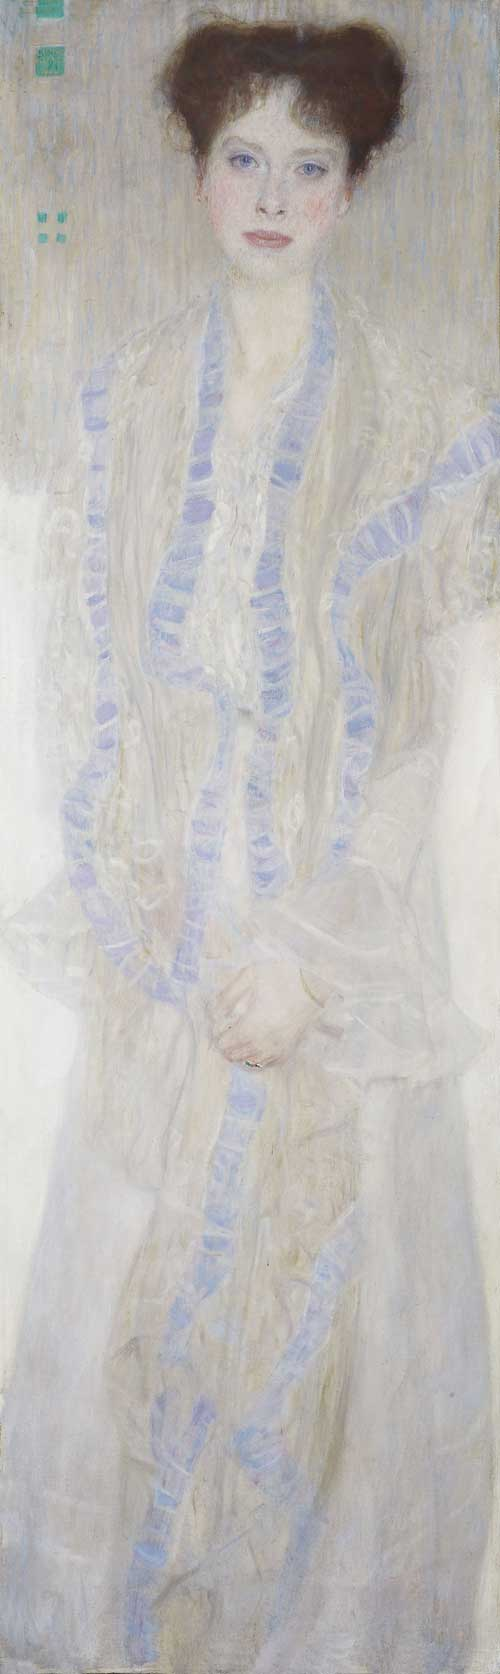 articles/Klimt foundation promises a fair and just agreement for portrait sitters heir